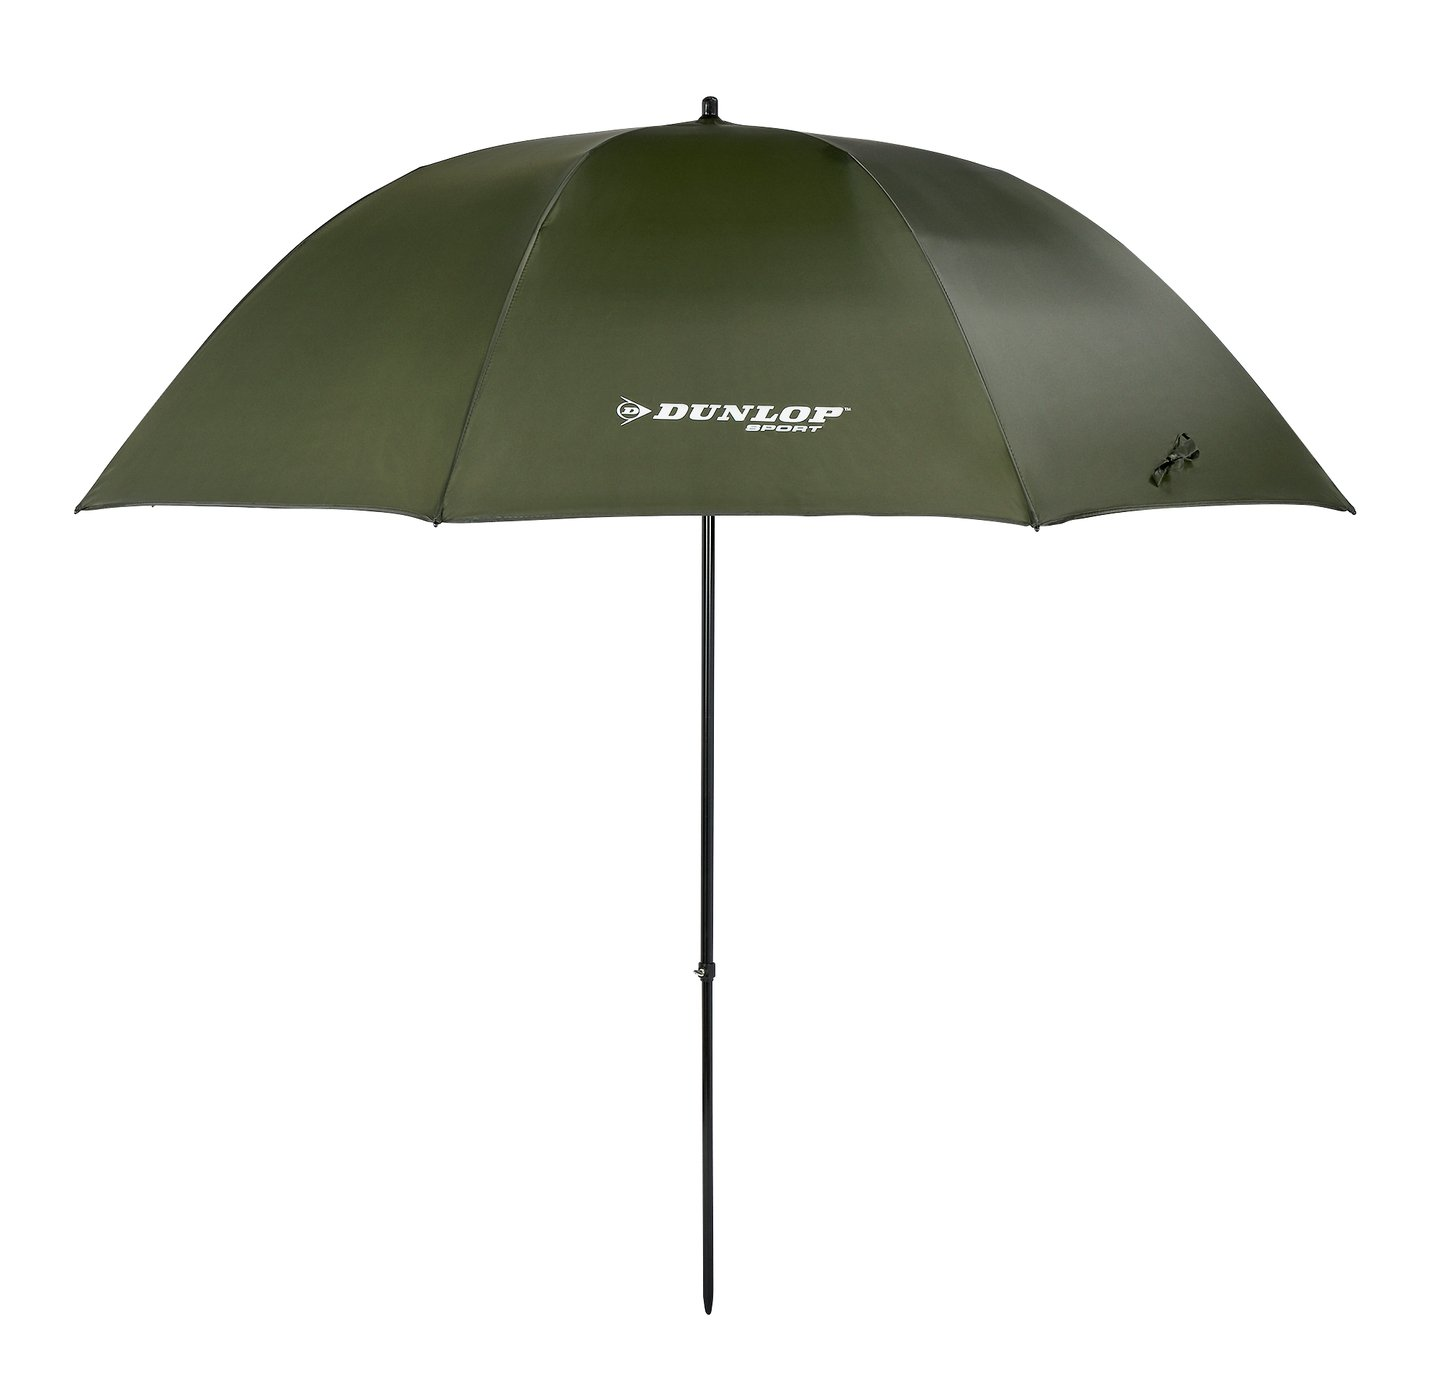 Dunlop Fishing 2.5 Large Umbrella from Dunlop